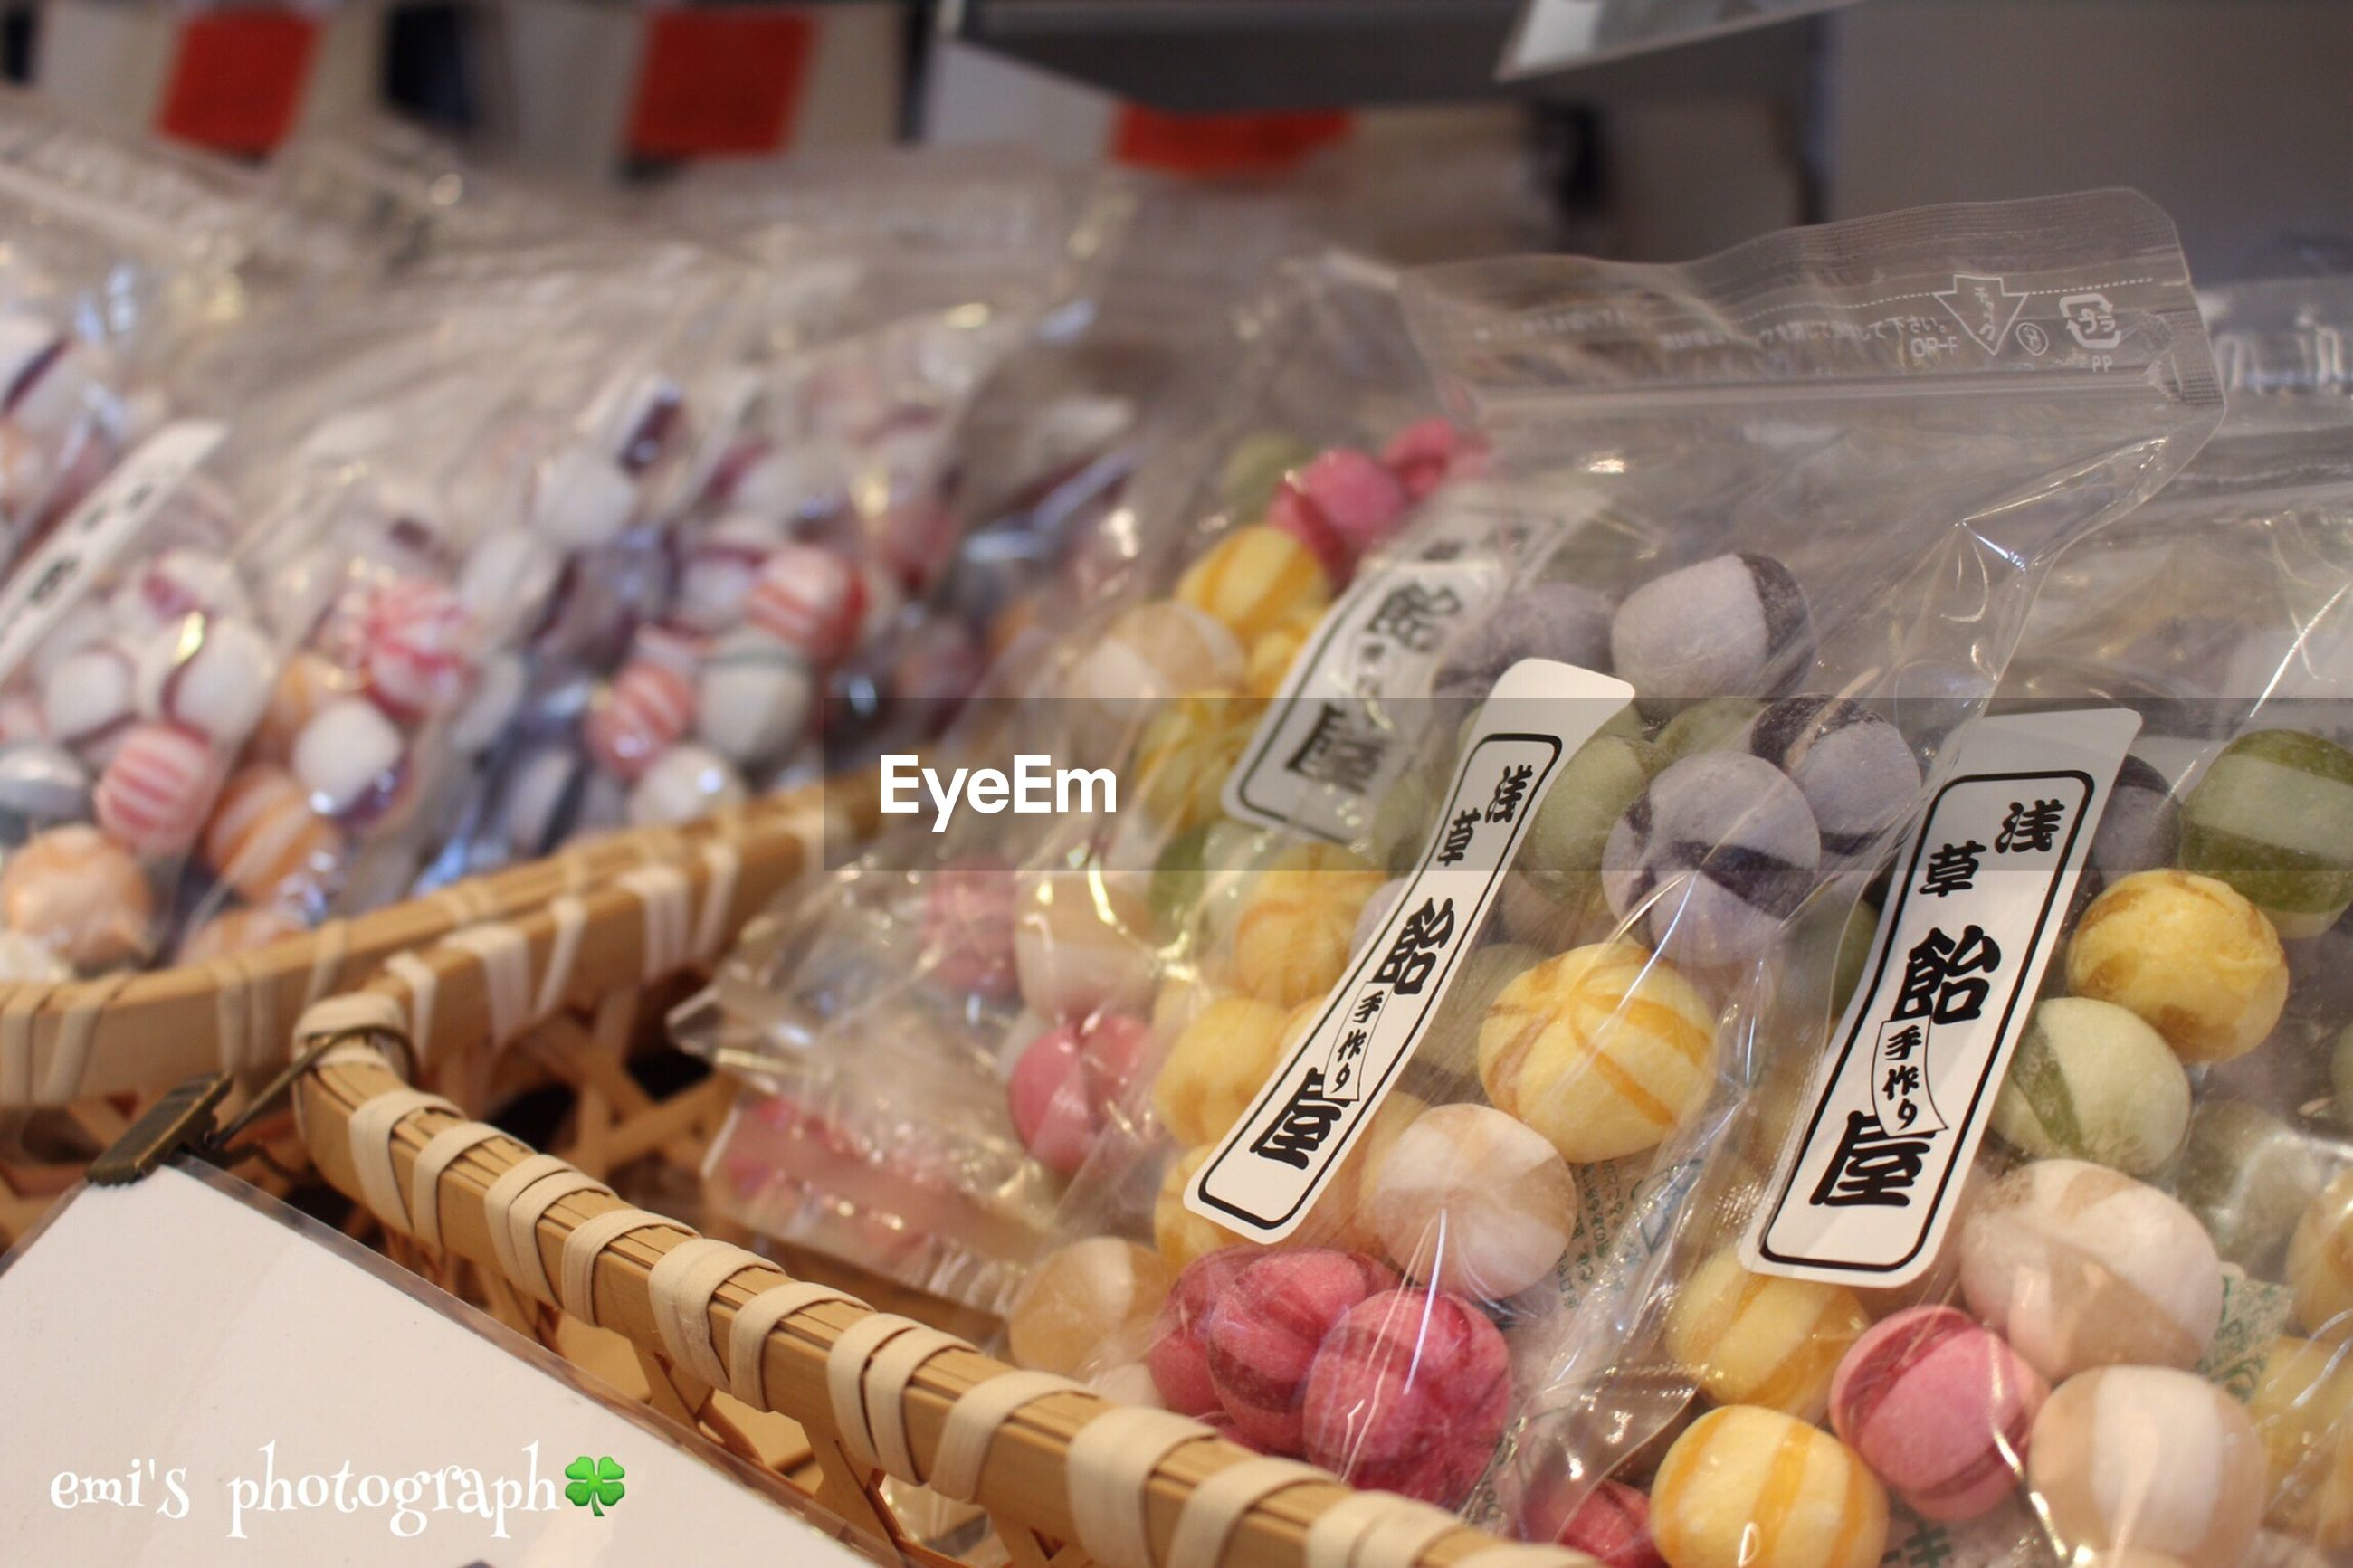 indoors, food and drink, text, food, western script, variation, still life, freshness, large group of objects, for sale, communication, choice, abundance, retail, close-up, price tag, sweet food, arrangement, selective focus, non-western script